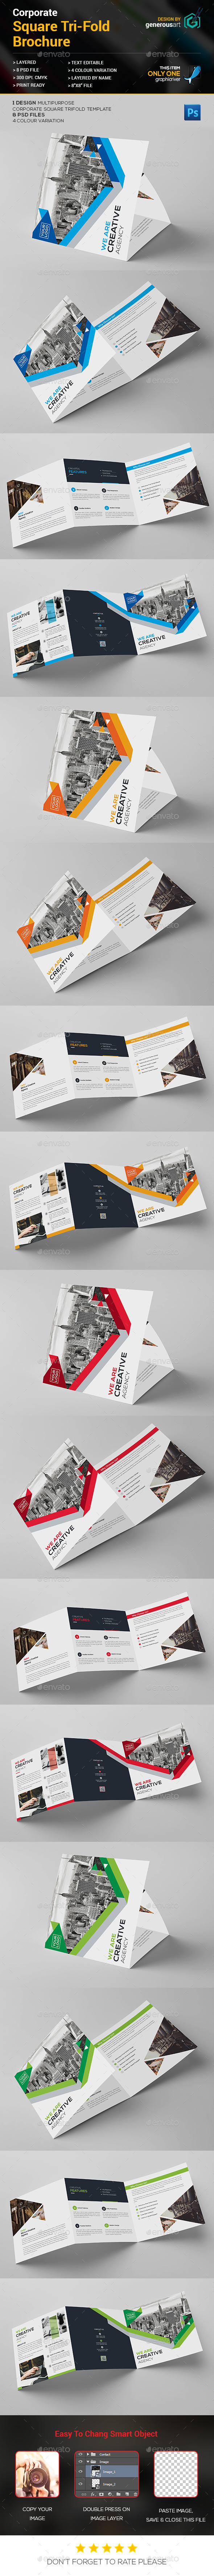 Square Tri-Fold Brochure – Corporate - Corporate Brochures